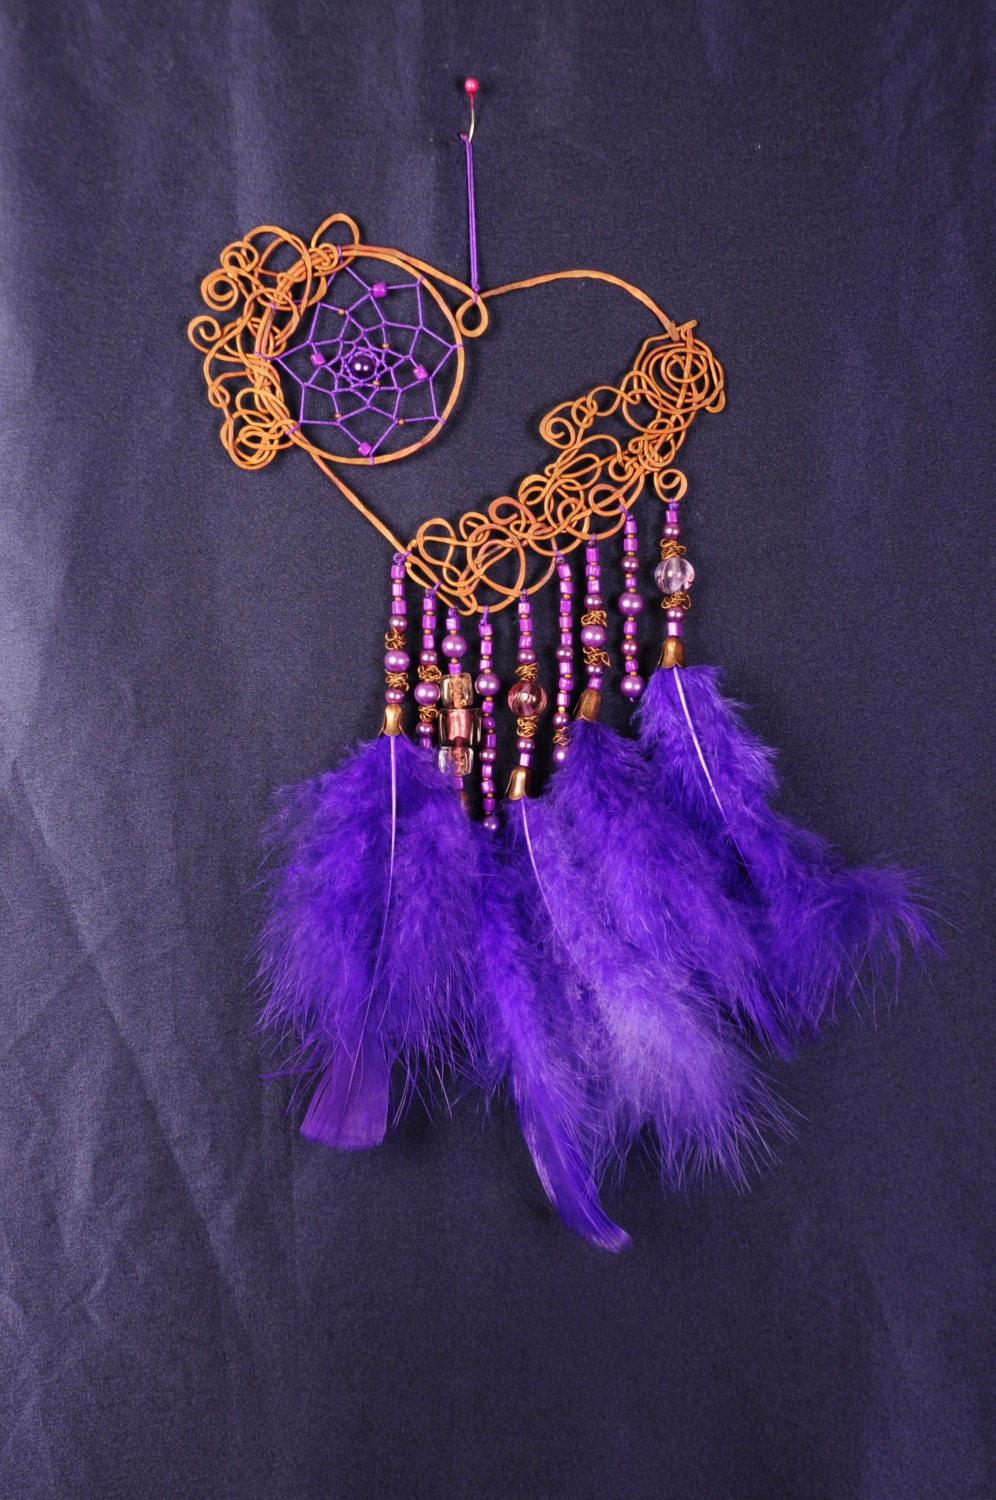 Can Dream Catchers Get Full Dreamcatcher Valentine Violet Pink violet Dream Catcher purple 22